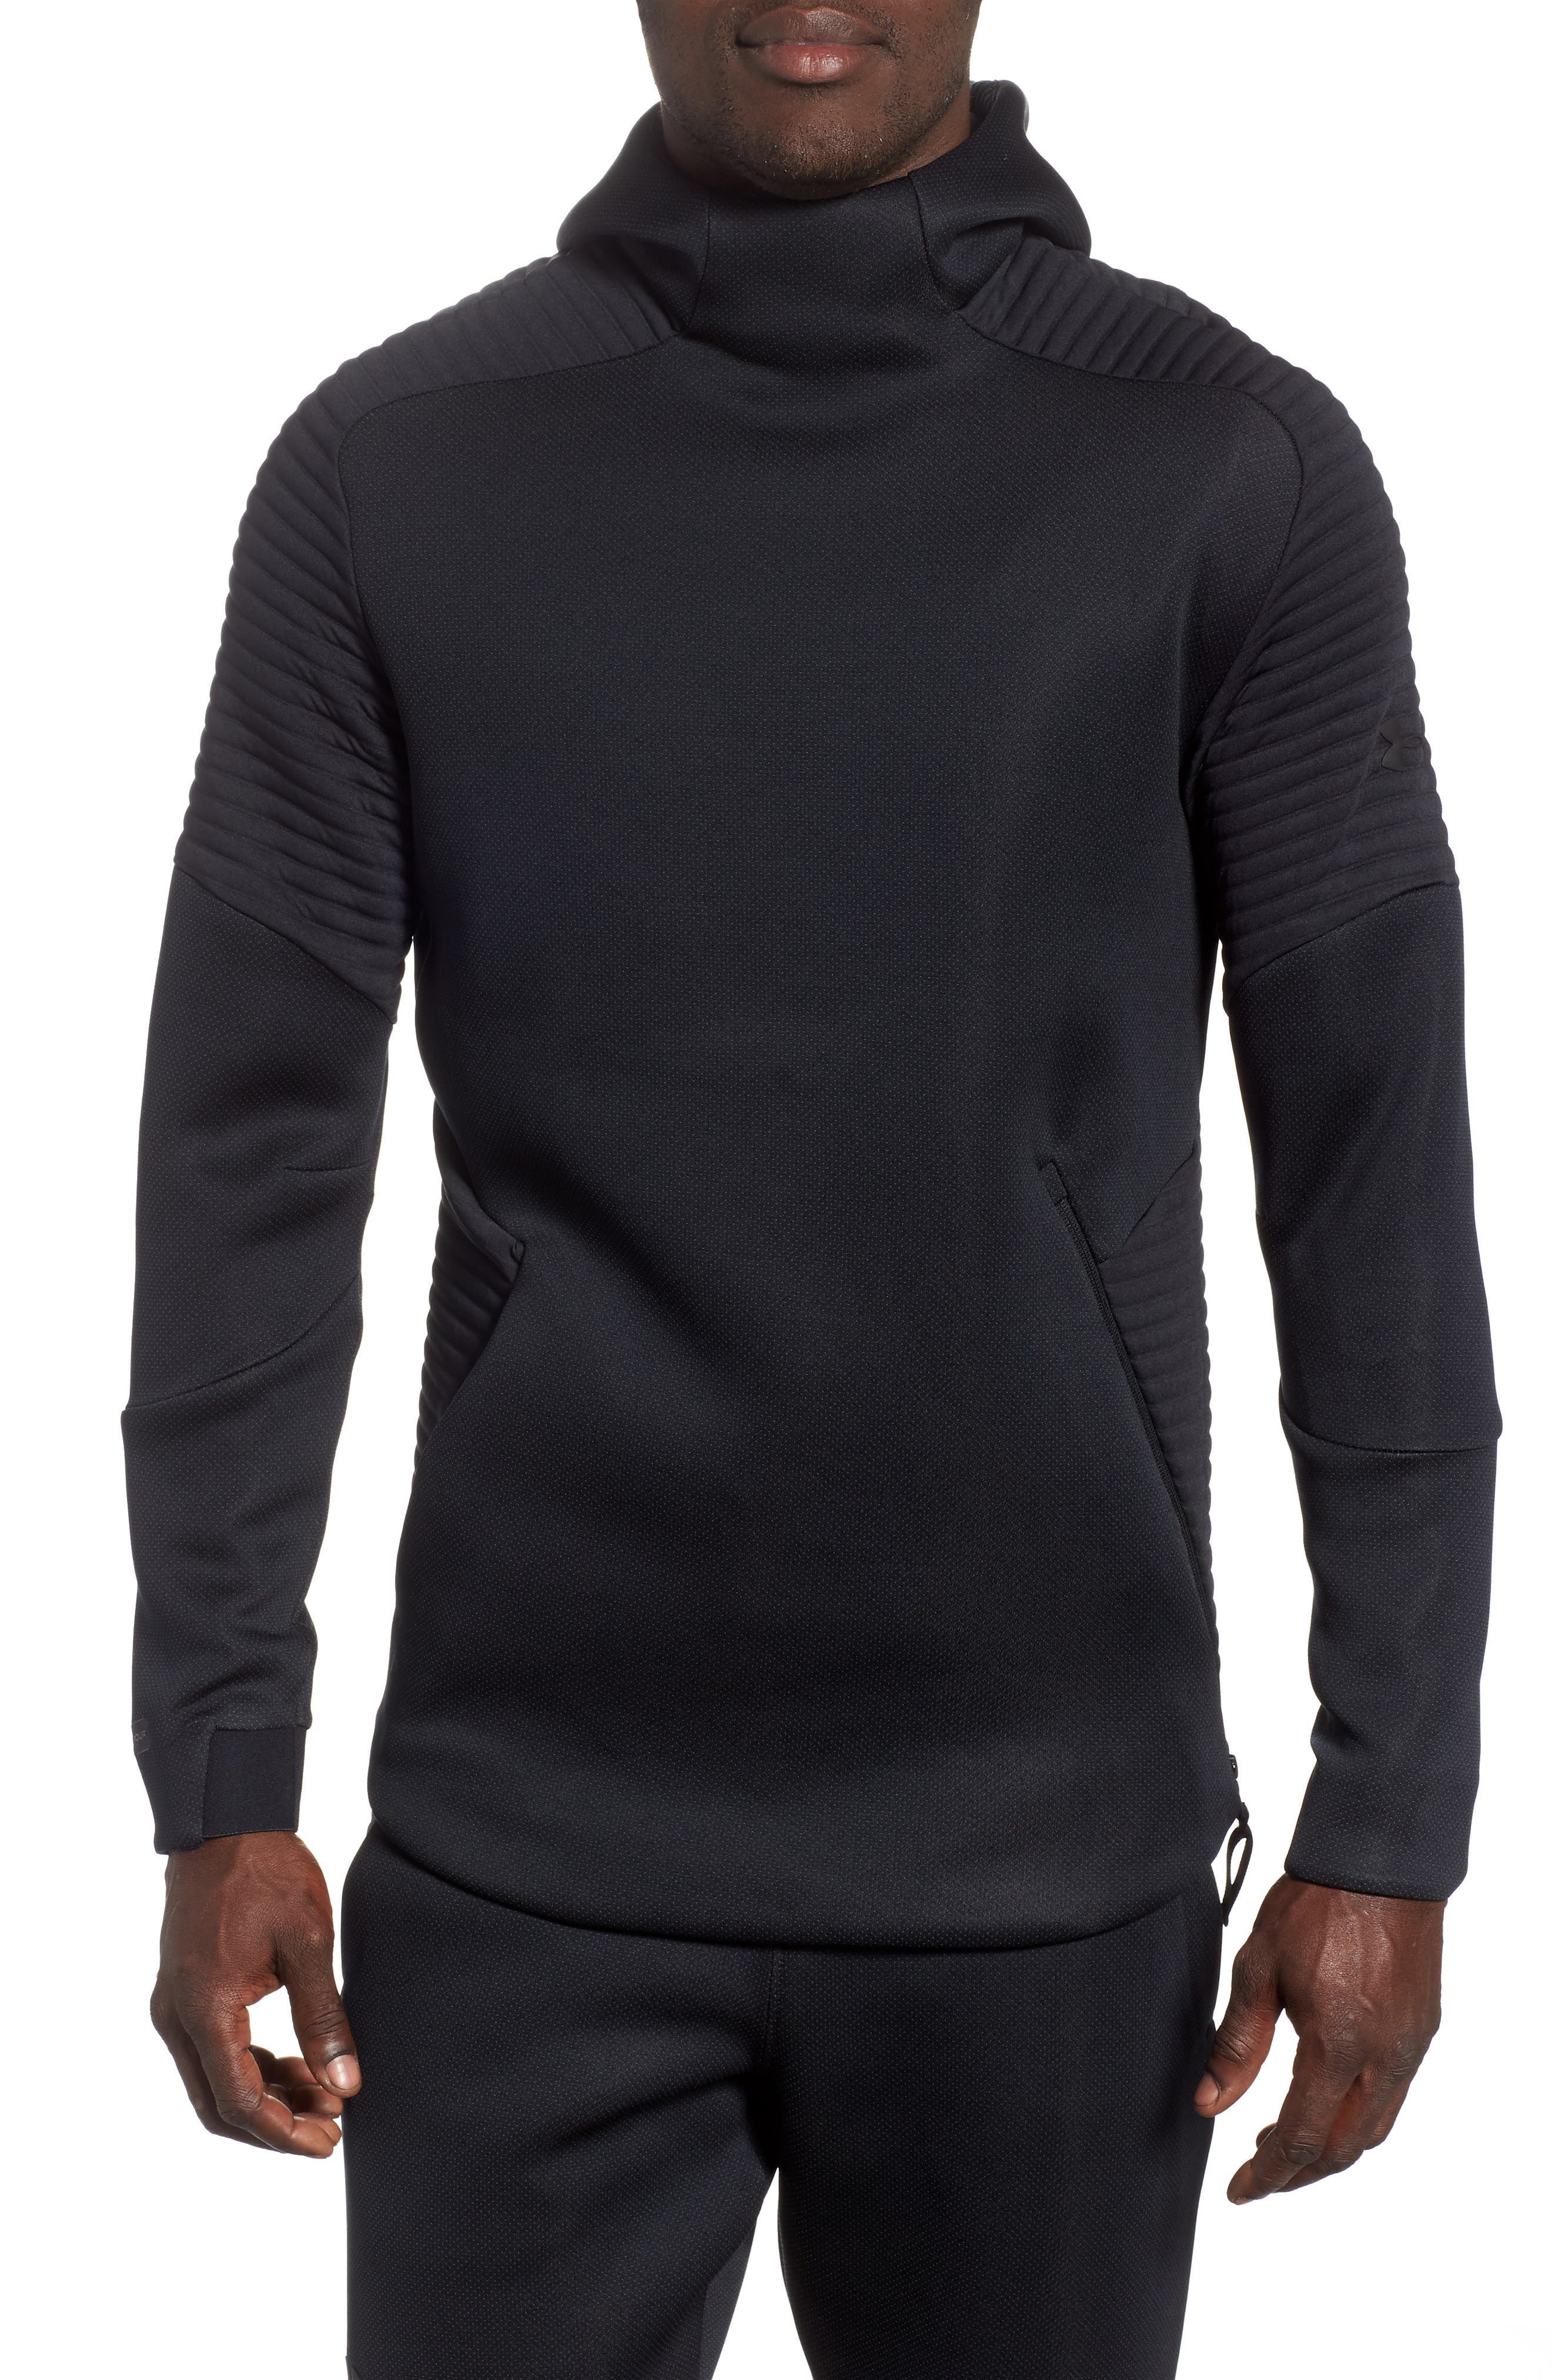 Unstoppable /MOVE Hoodie,                         Main,                         color, BLACK/ CHARCOAL/ BLACK